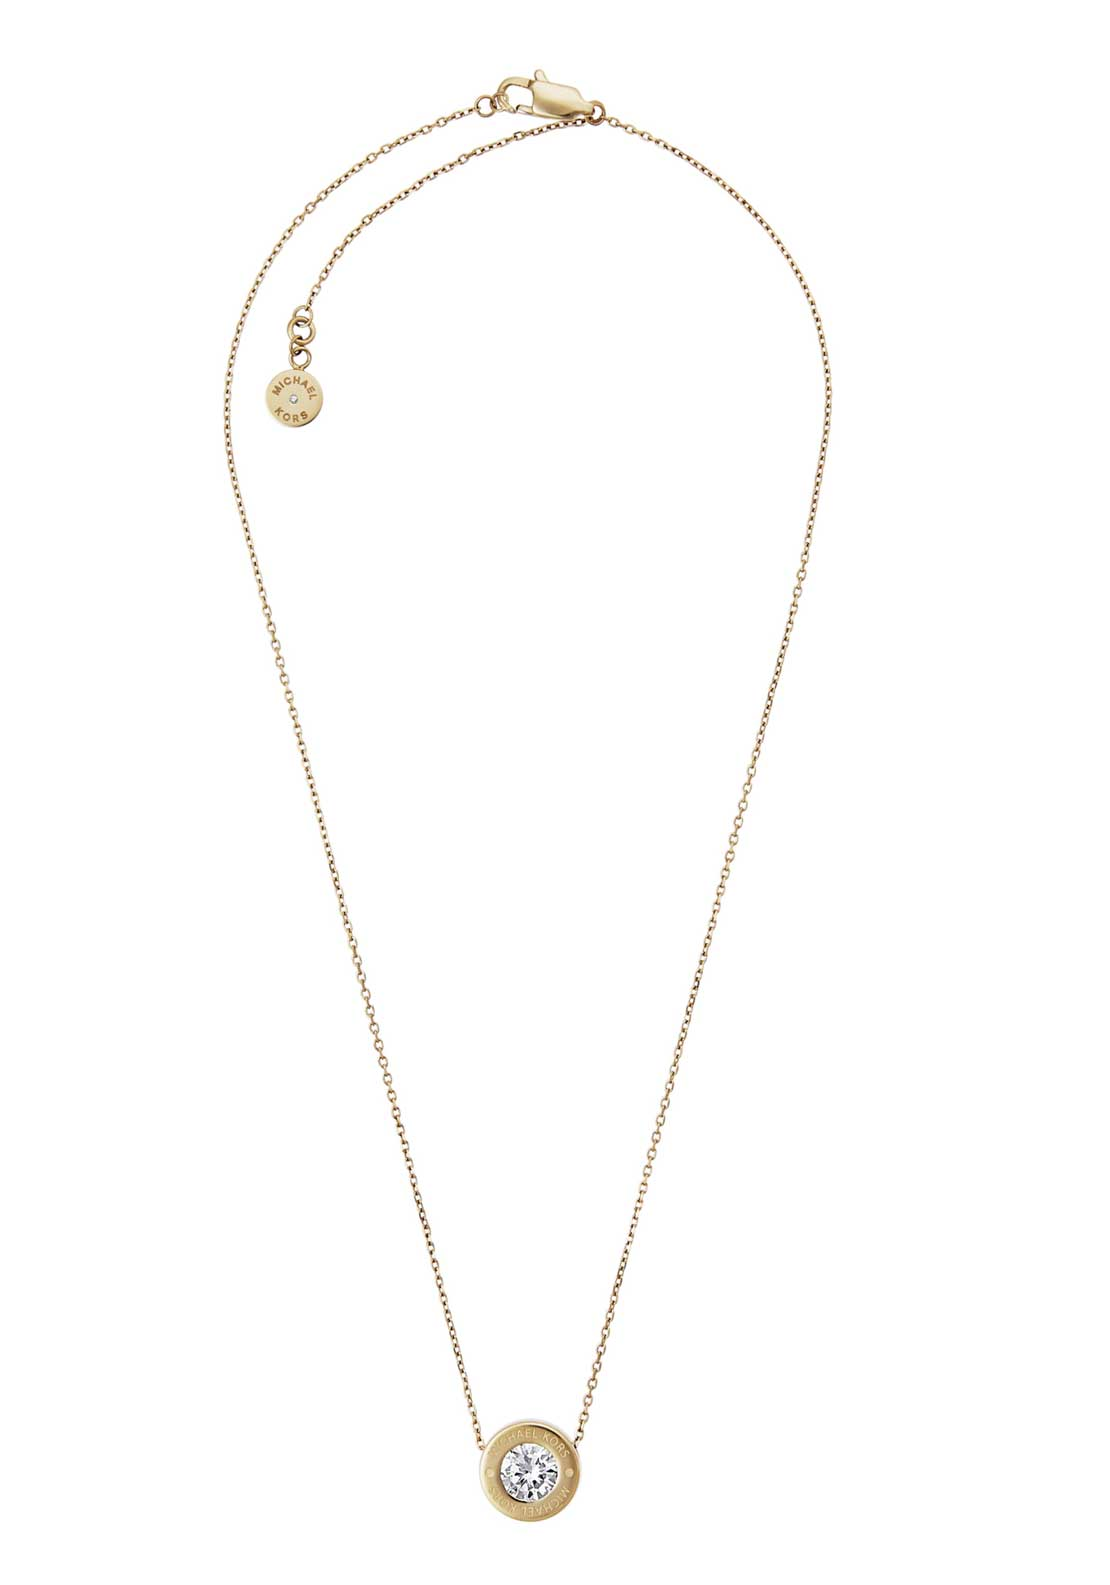 Michael Kors Womens Brilliance Diamante Stud Necklace, Gold